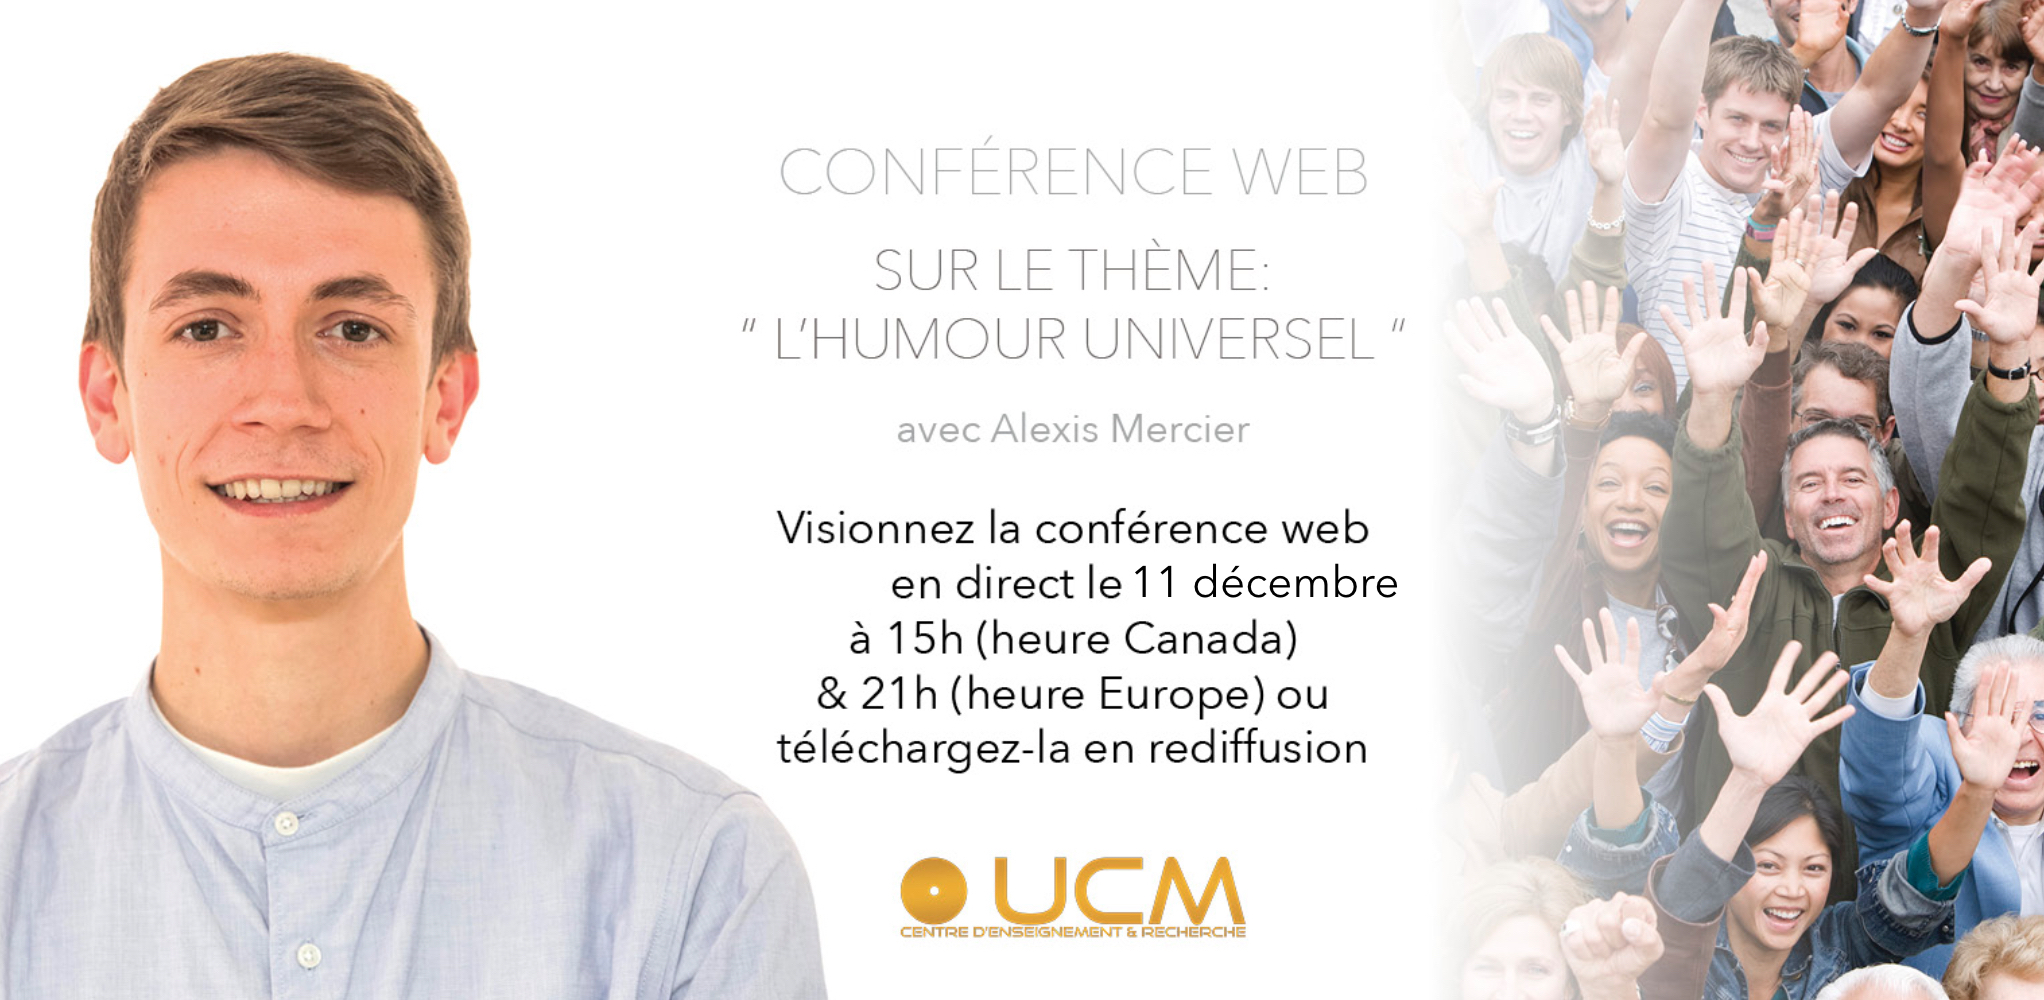 Alexis-conference-web.png